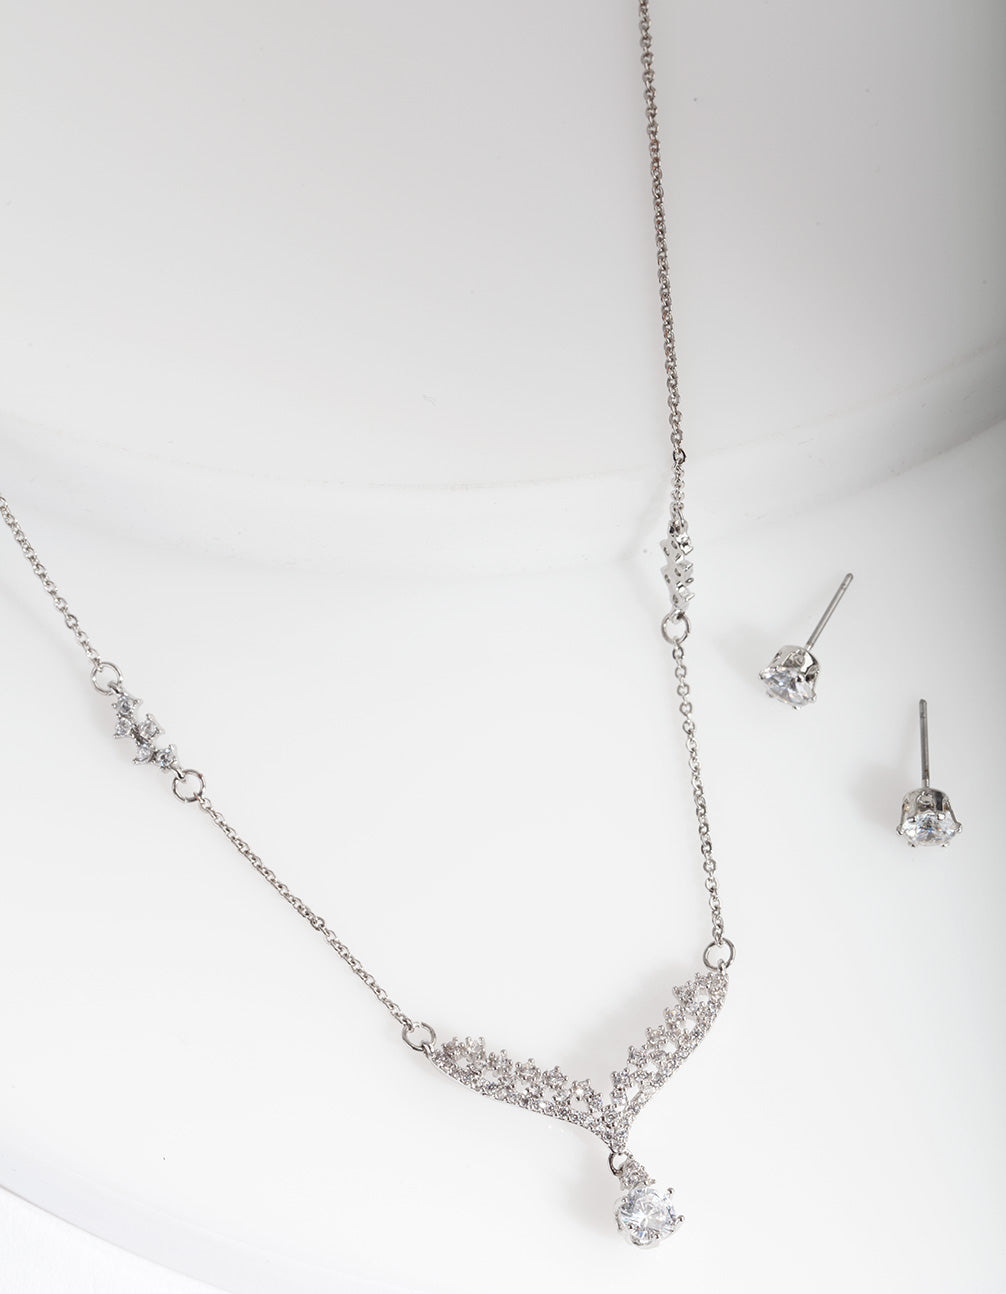 Rhodium Cubic Zironia Wing Earring Necklace Set